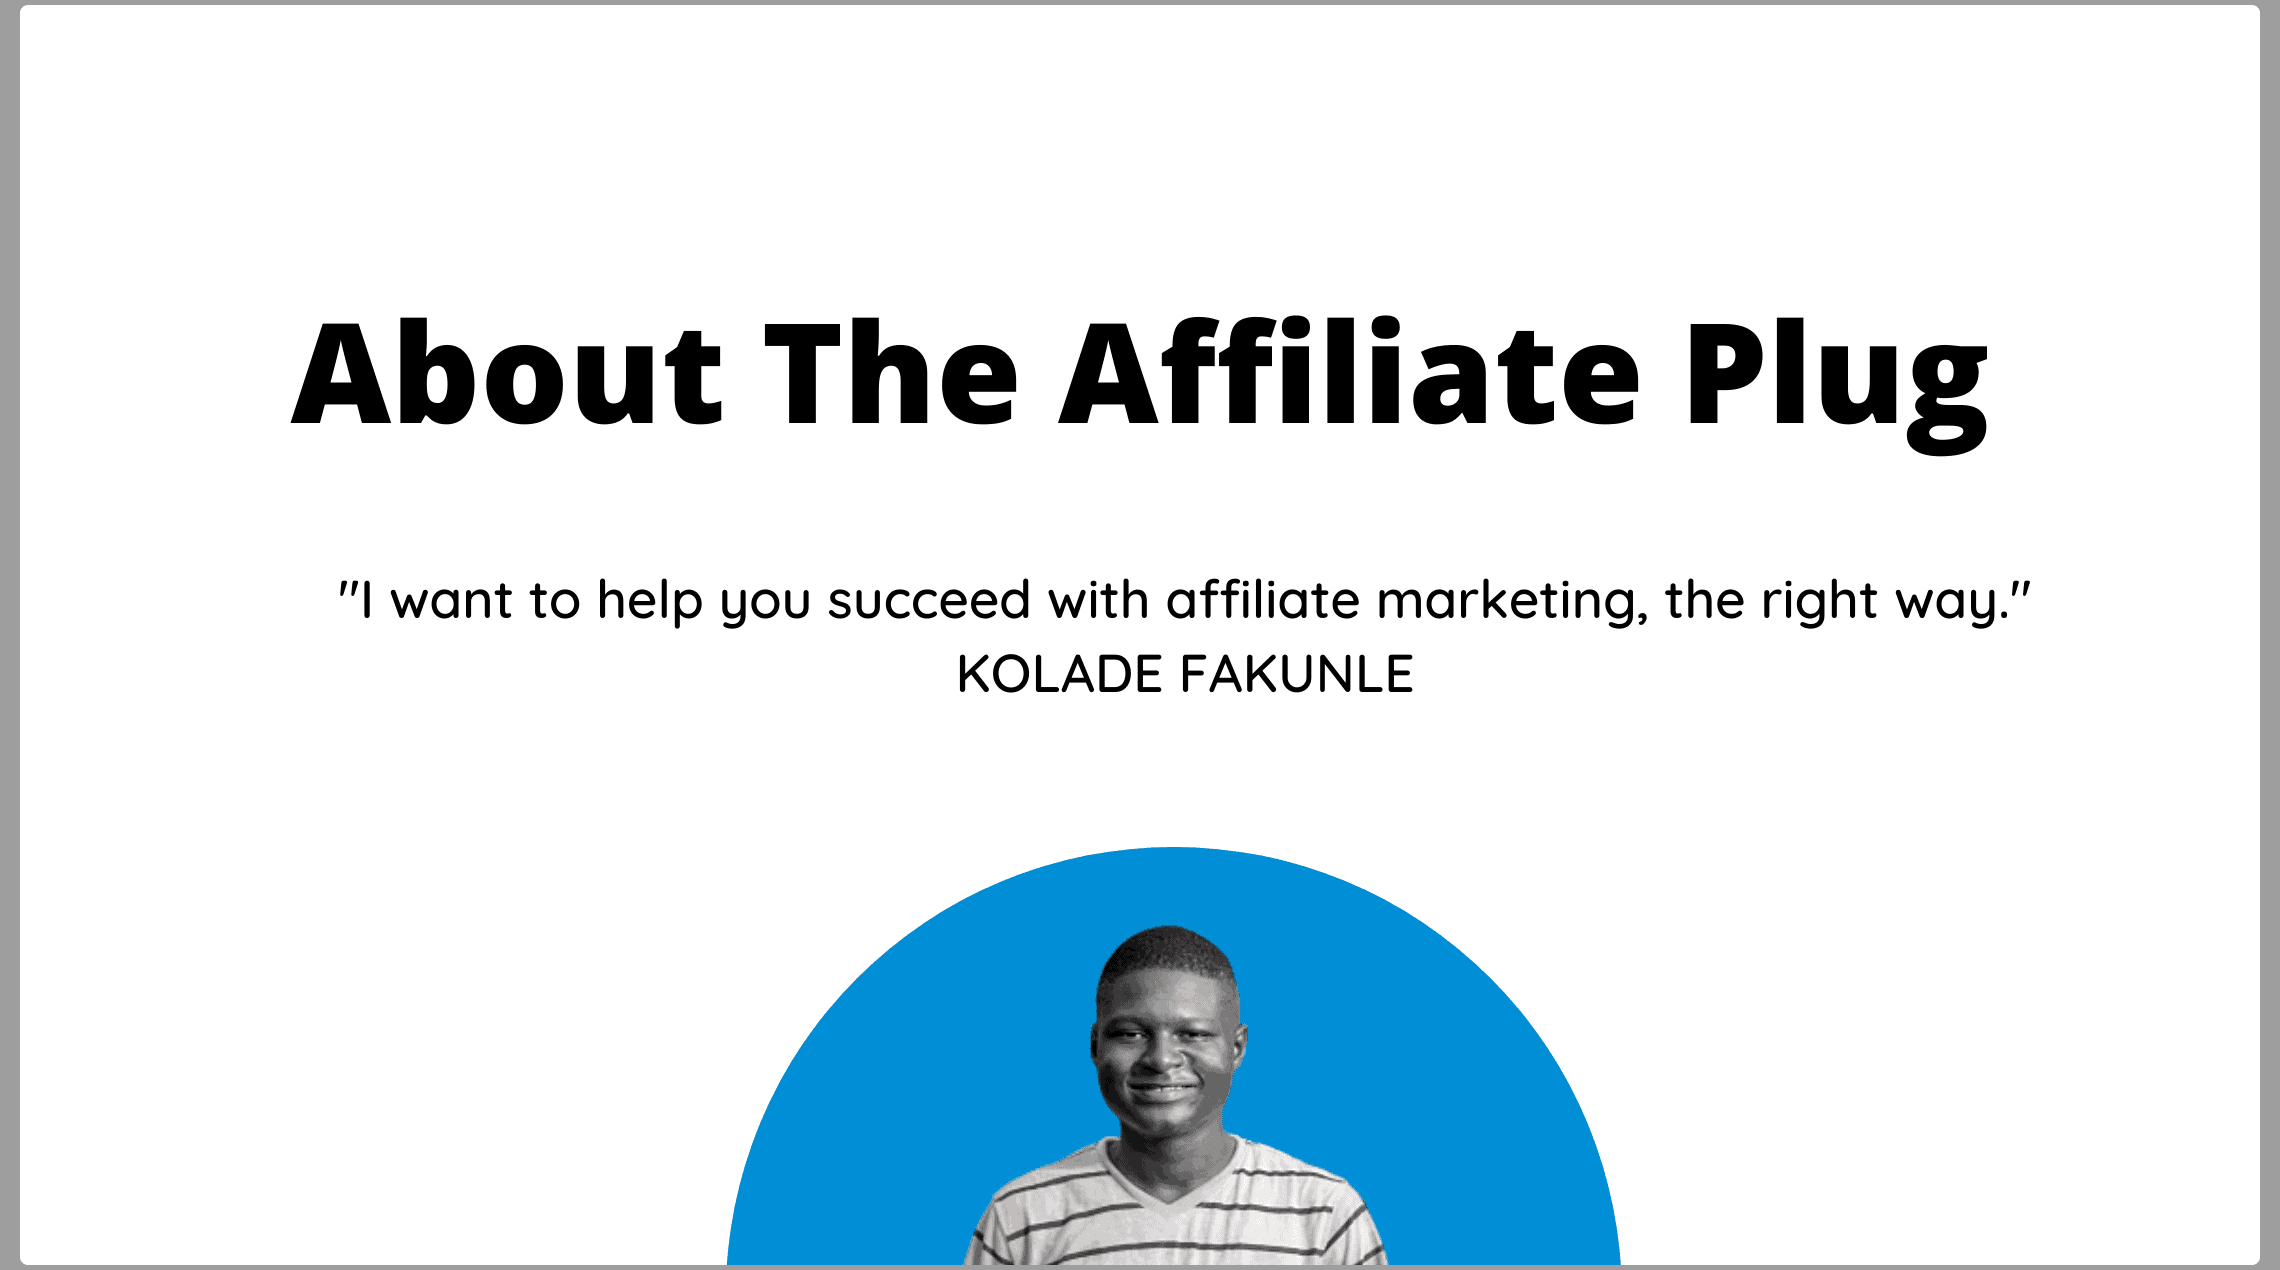 About - The Affiliate Plug